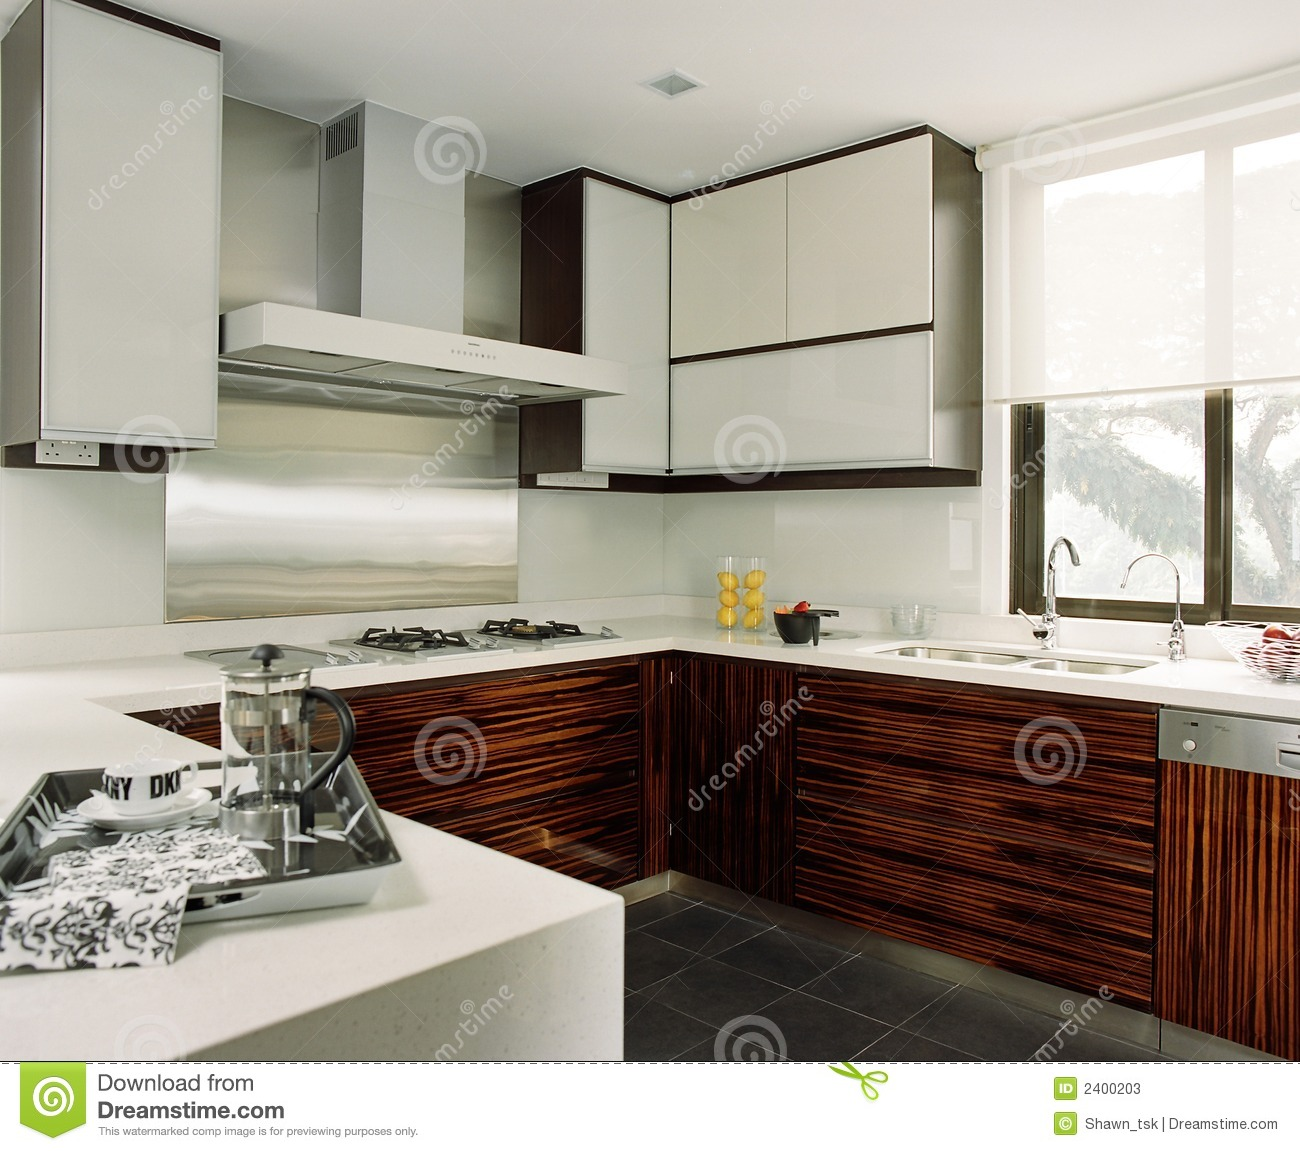 Interior Design Kitchen Stock Photos Image 2400203